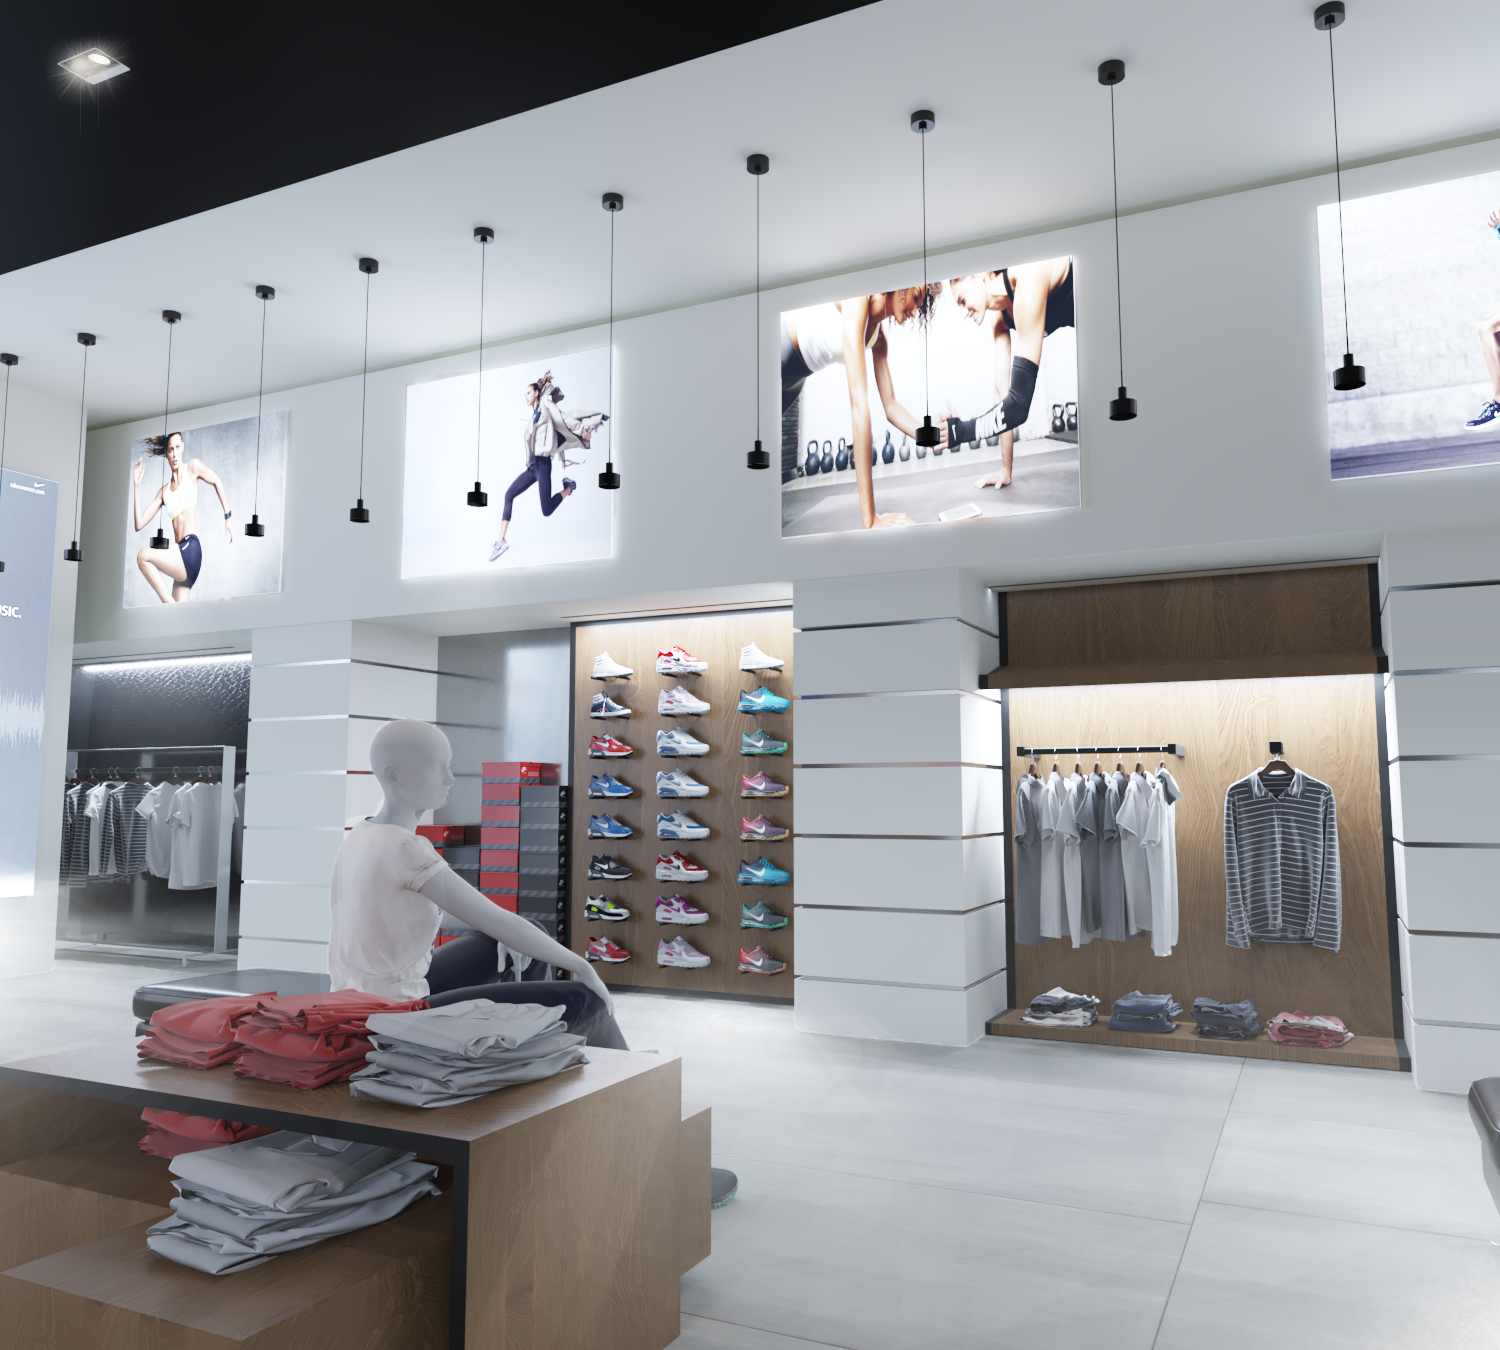 Design of the layout of shoes and clothes in the store